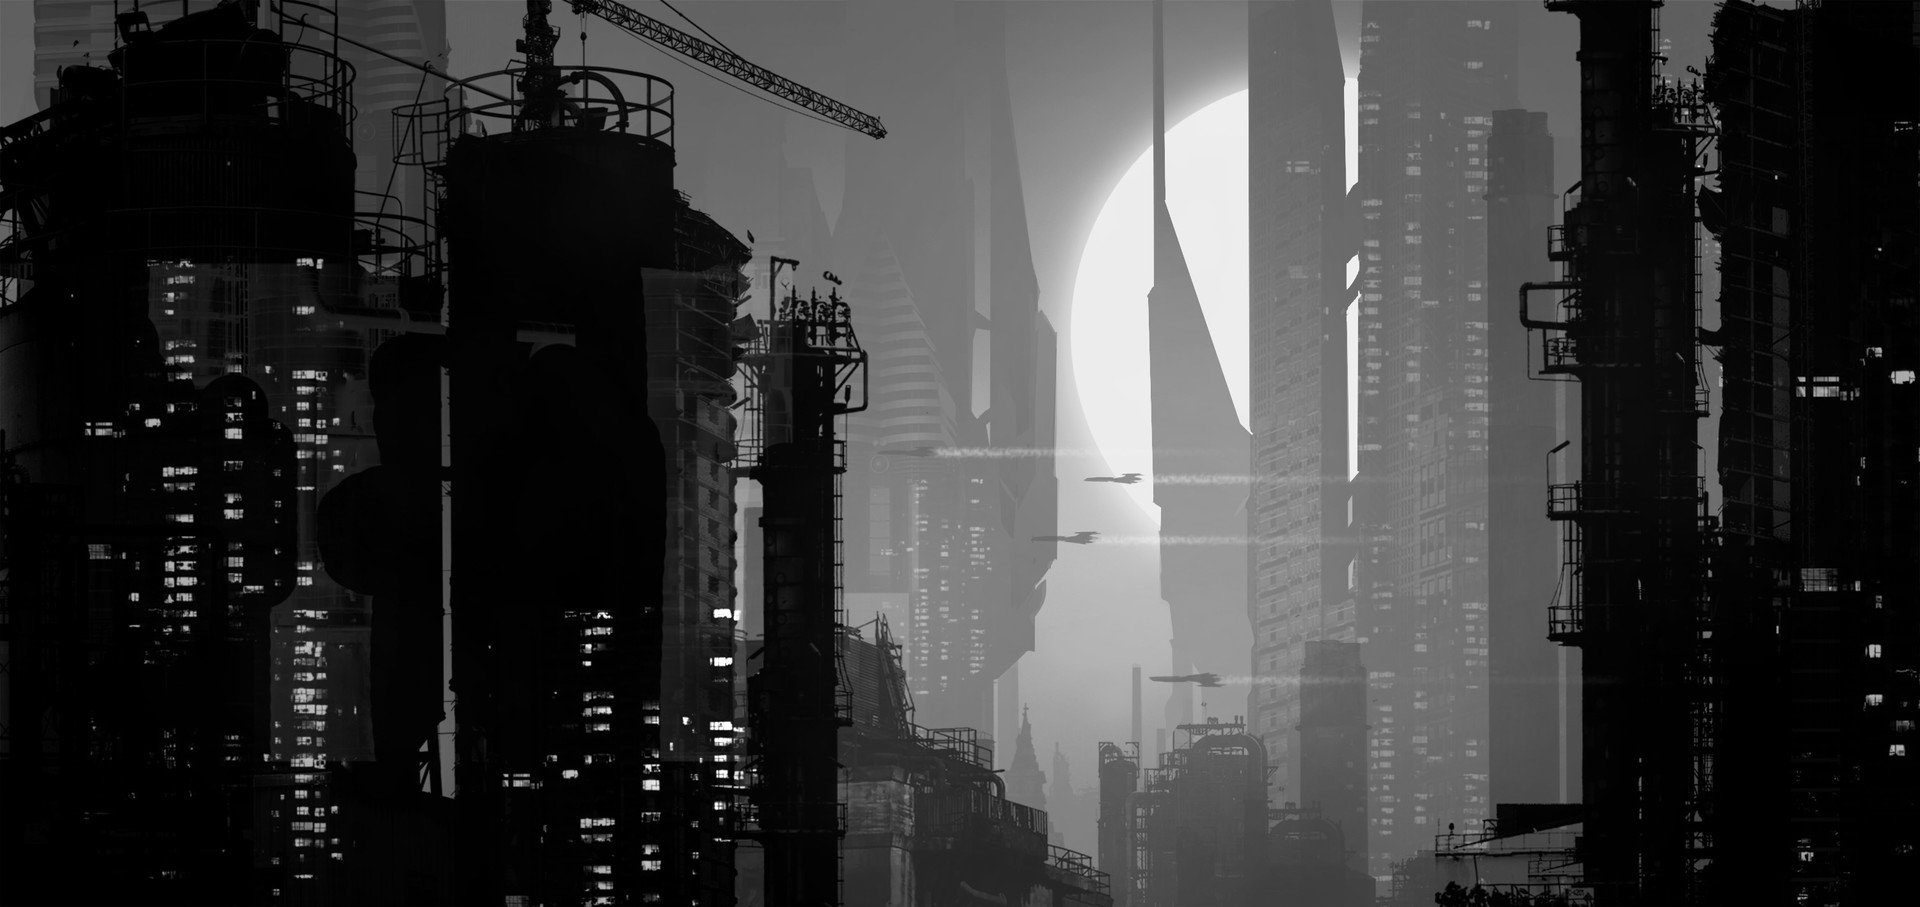 Raphael lacoste buildings shapes